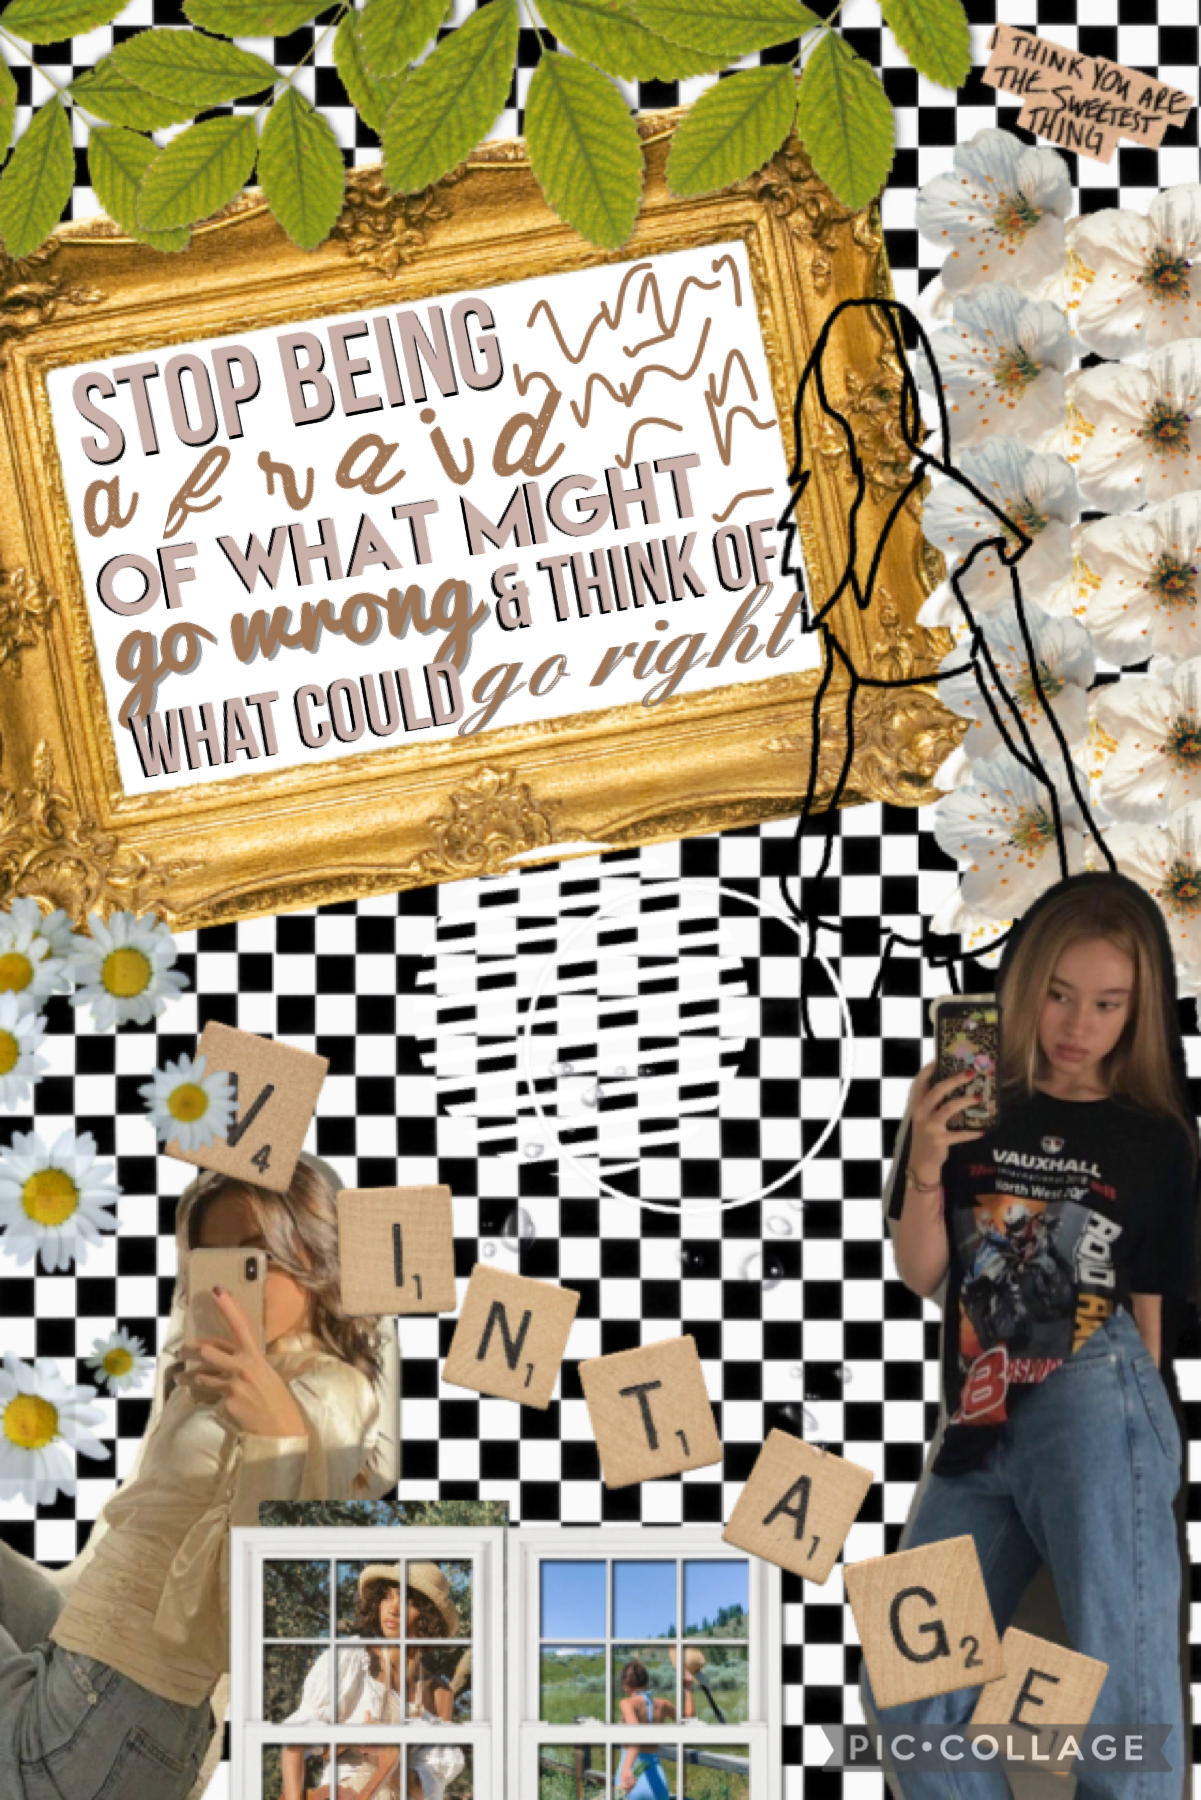 ☁️3/20☁️ Hey skies!! Ik ik ik I haven't posted in a minute, ok ok, a longggg time 😅 This is one collage I worked on that I'm actually proud of! Lmk what you think! Q: What is your favorite restaurant? Or food? A: Paella!! 😋 Have a blessed day!! 💕